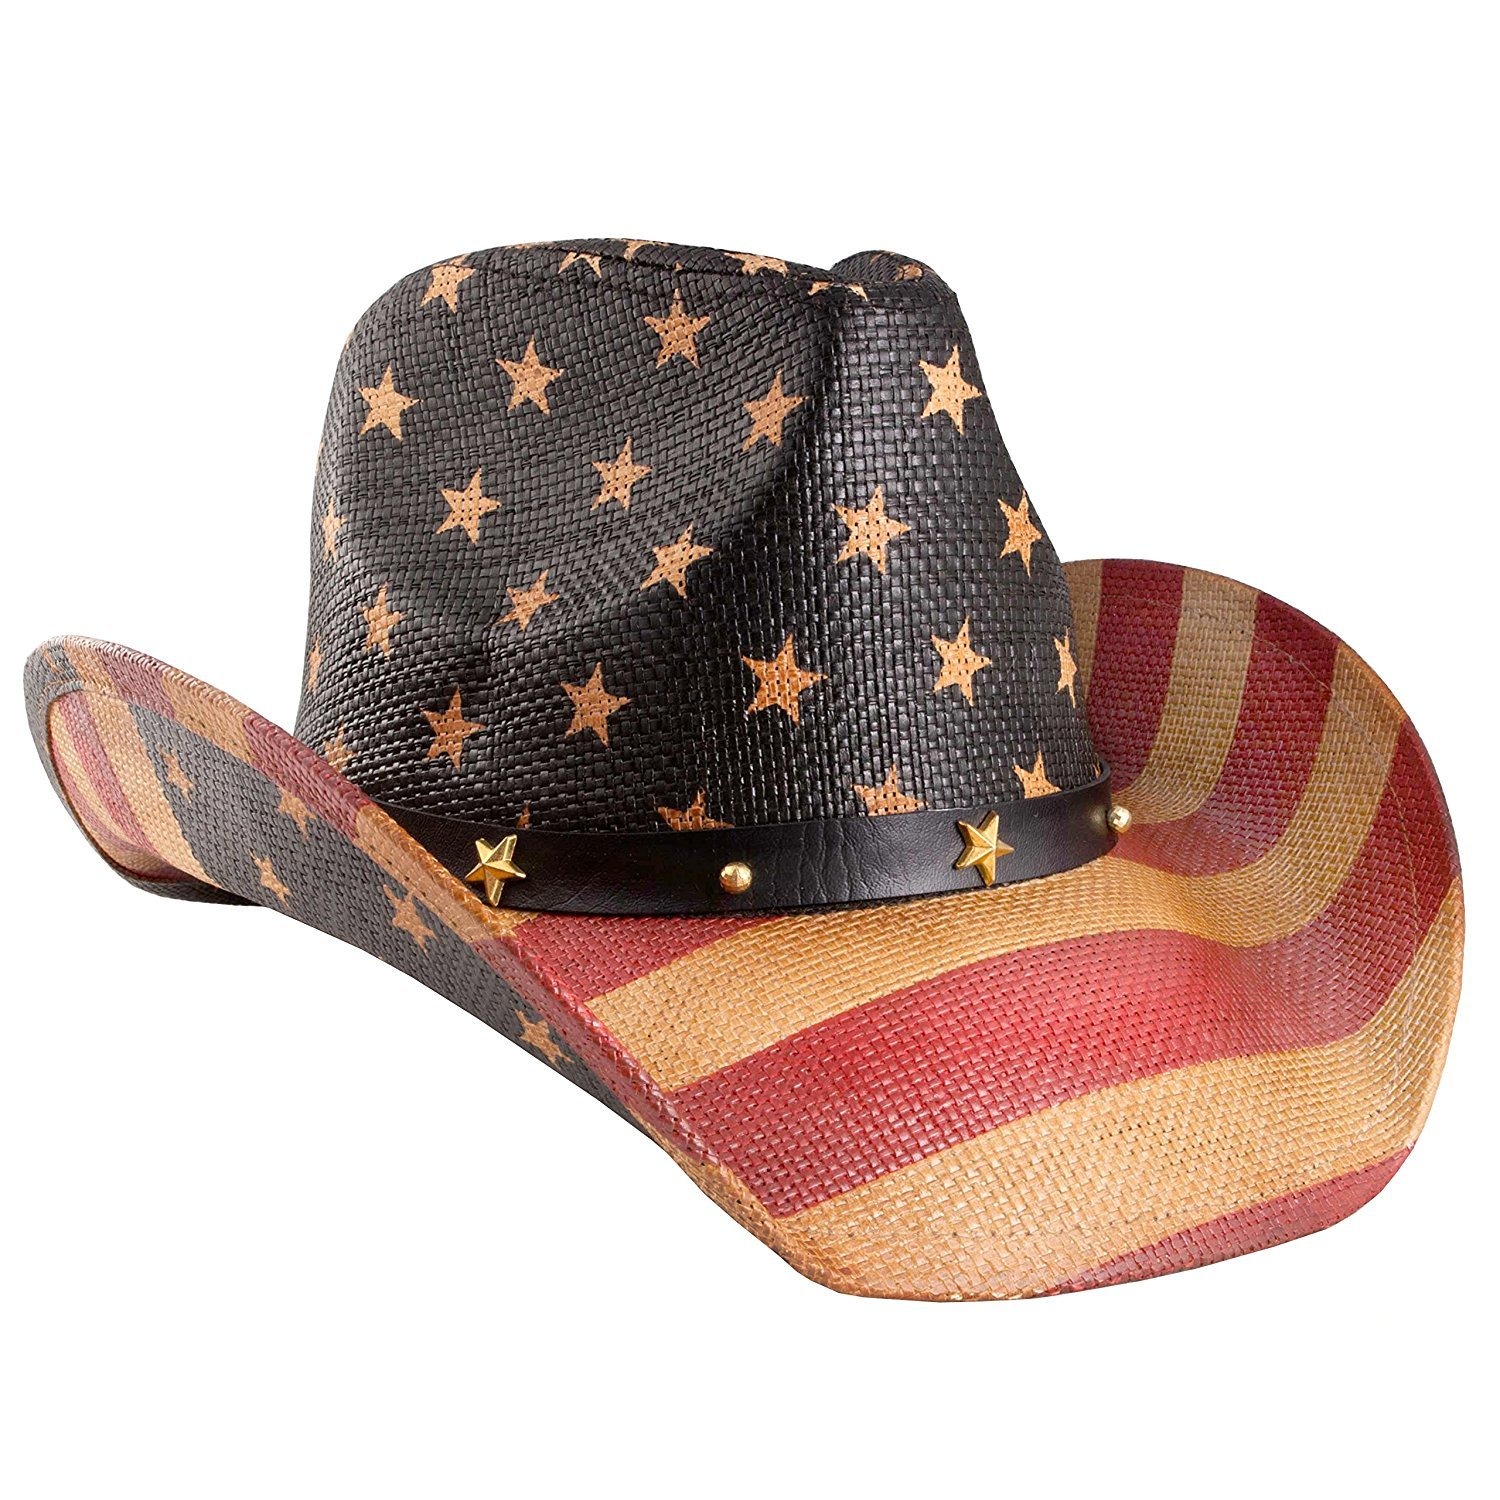 086980ba Vamuss Men's Vintage USA American Flag Cowboy Hat w/Western Shape-It Brim,  Tea Stained Black Band